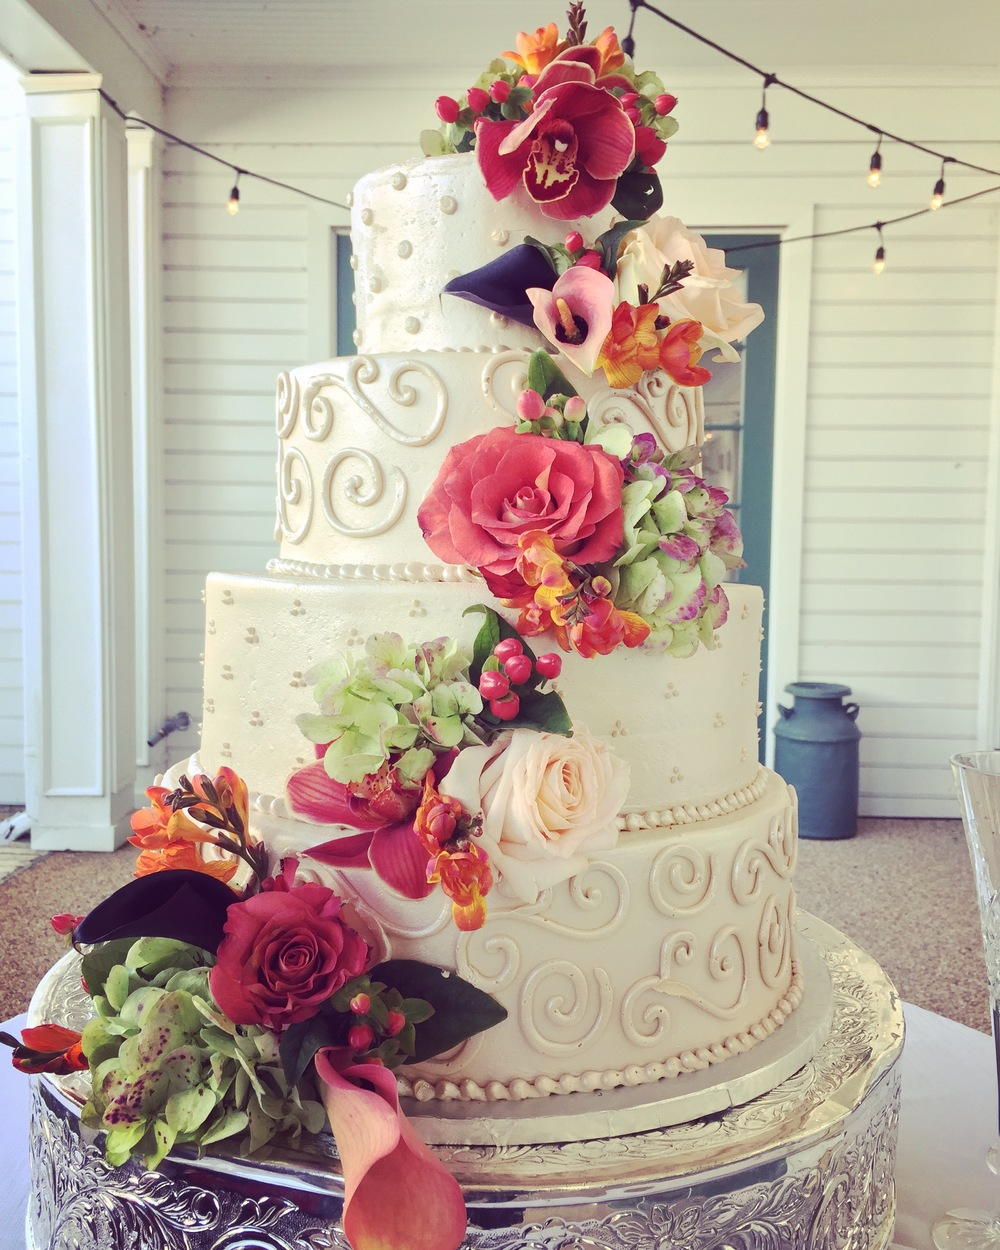 It was love at first sight! Cake by Flour Child Bakery, flowers by Kathy Forrest.